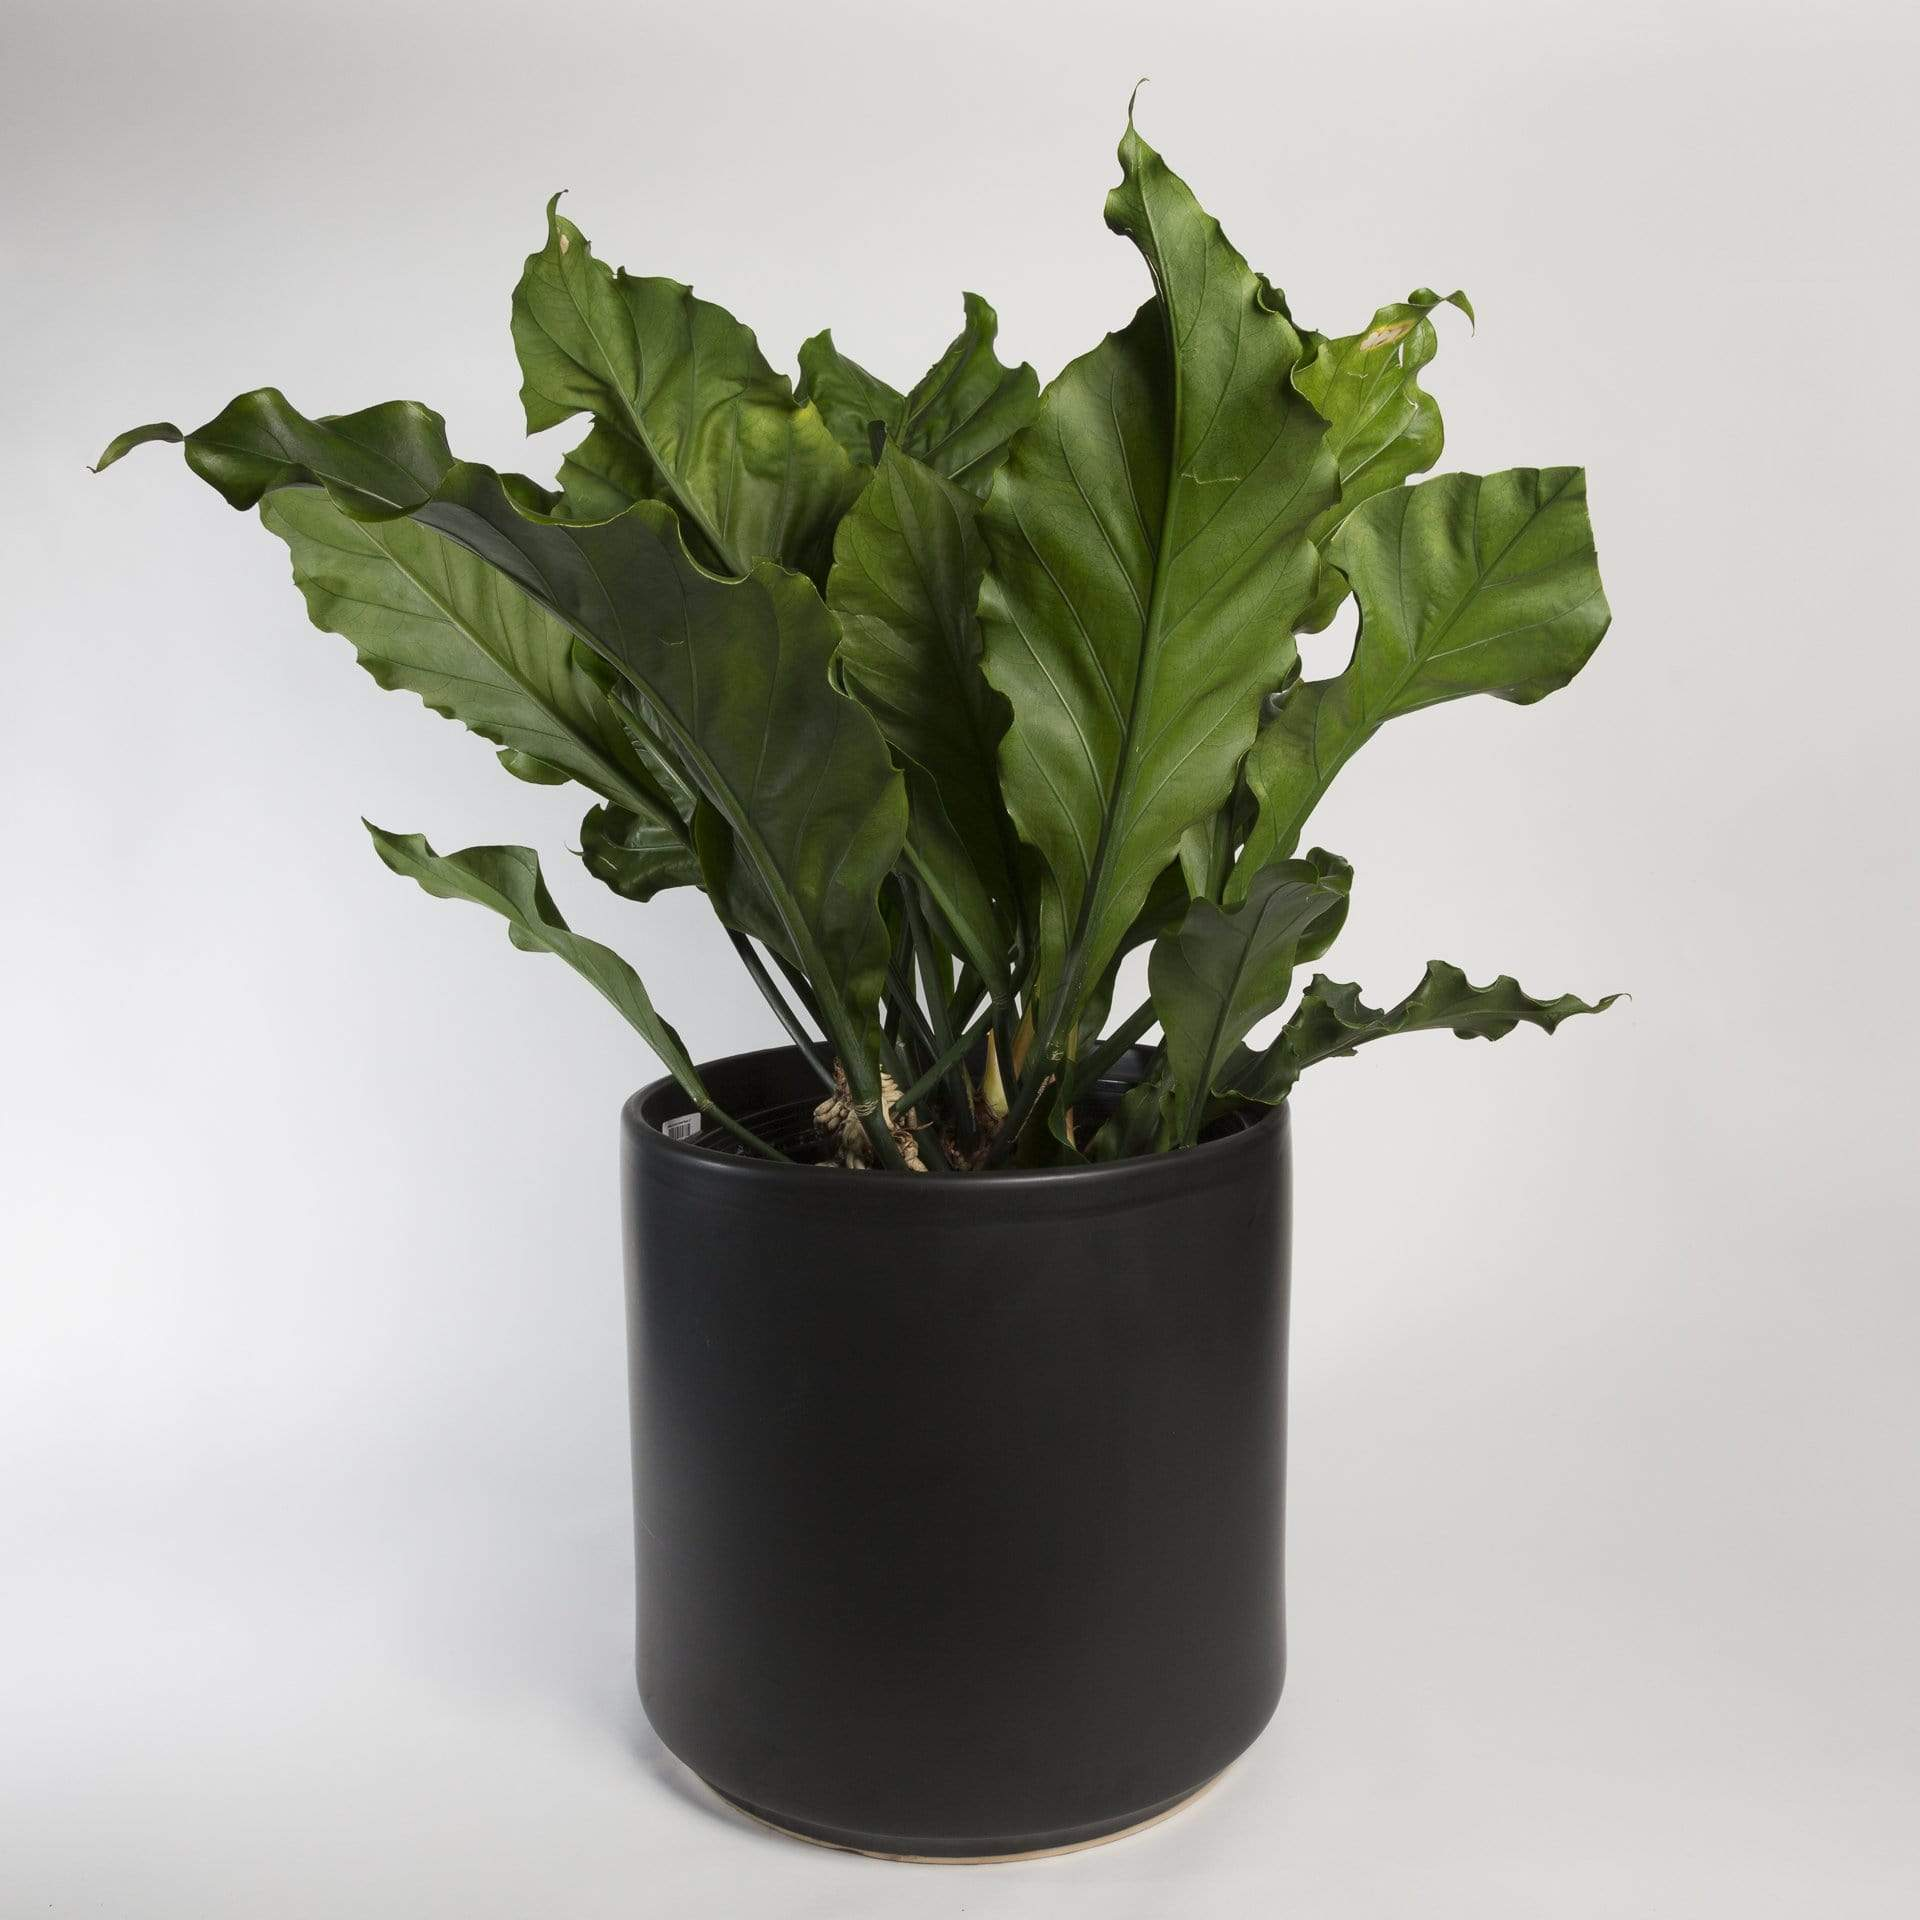 "Urban Sprouts Floor Plant 14"" in nursery pot Anthurium 'Fruffles' 14"""